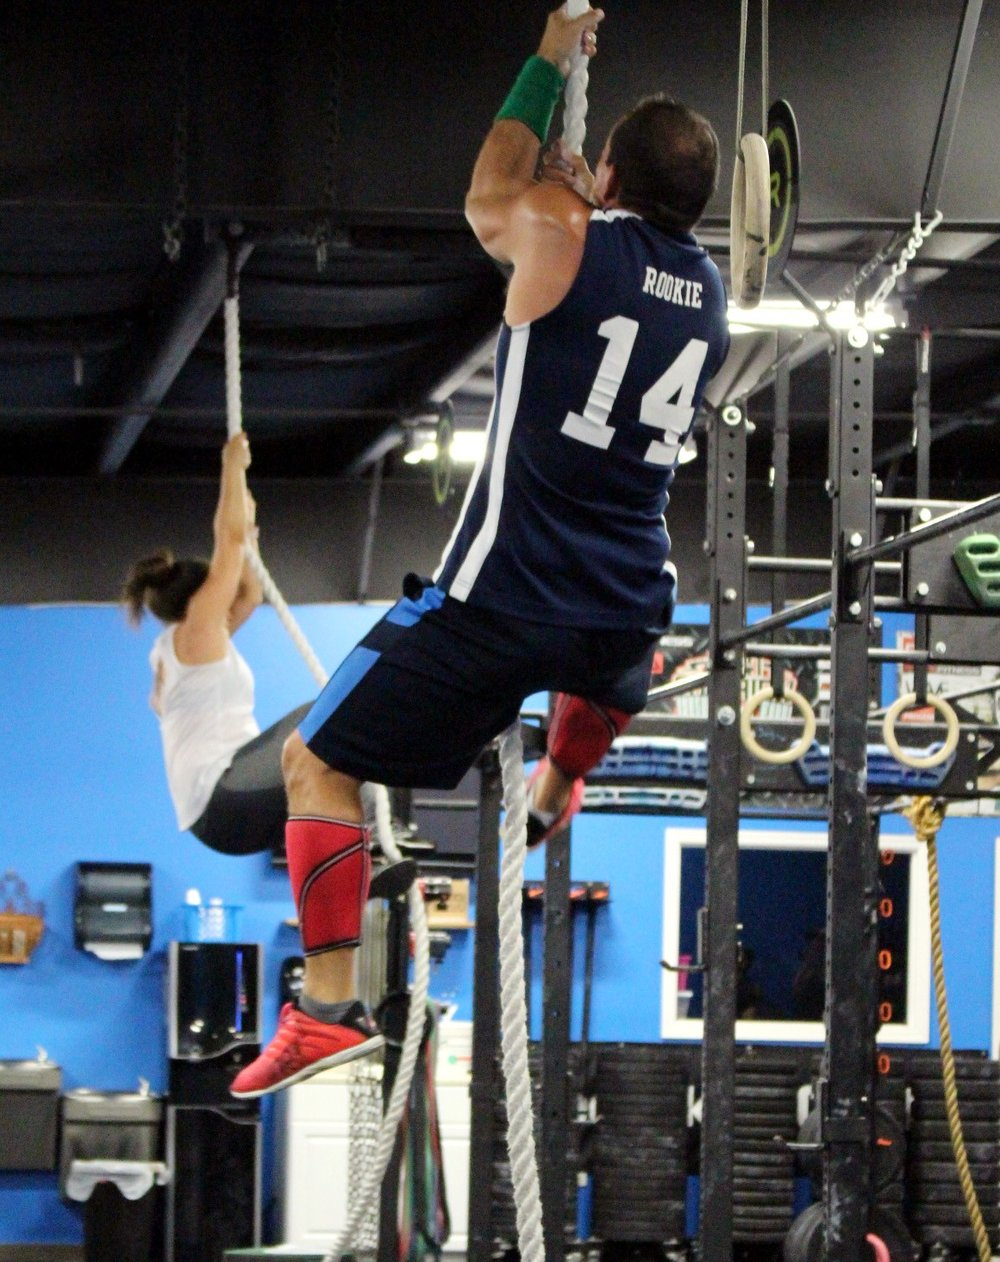 Rope Climbs - regular & legless